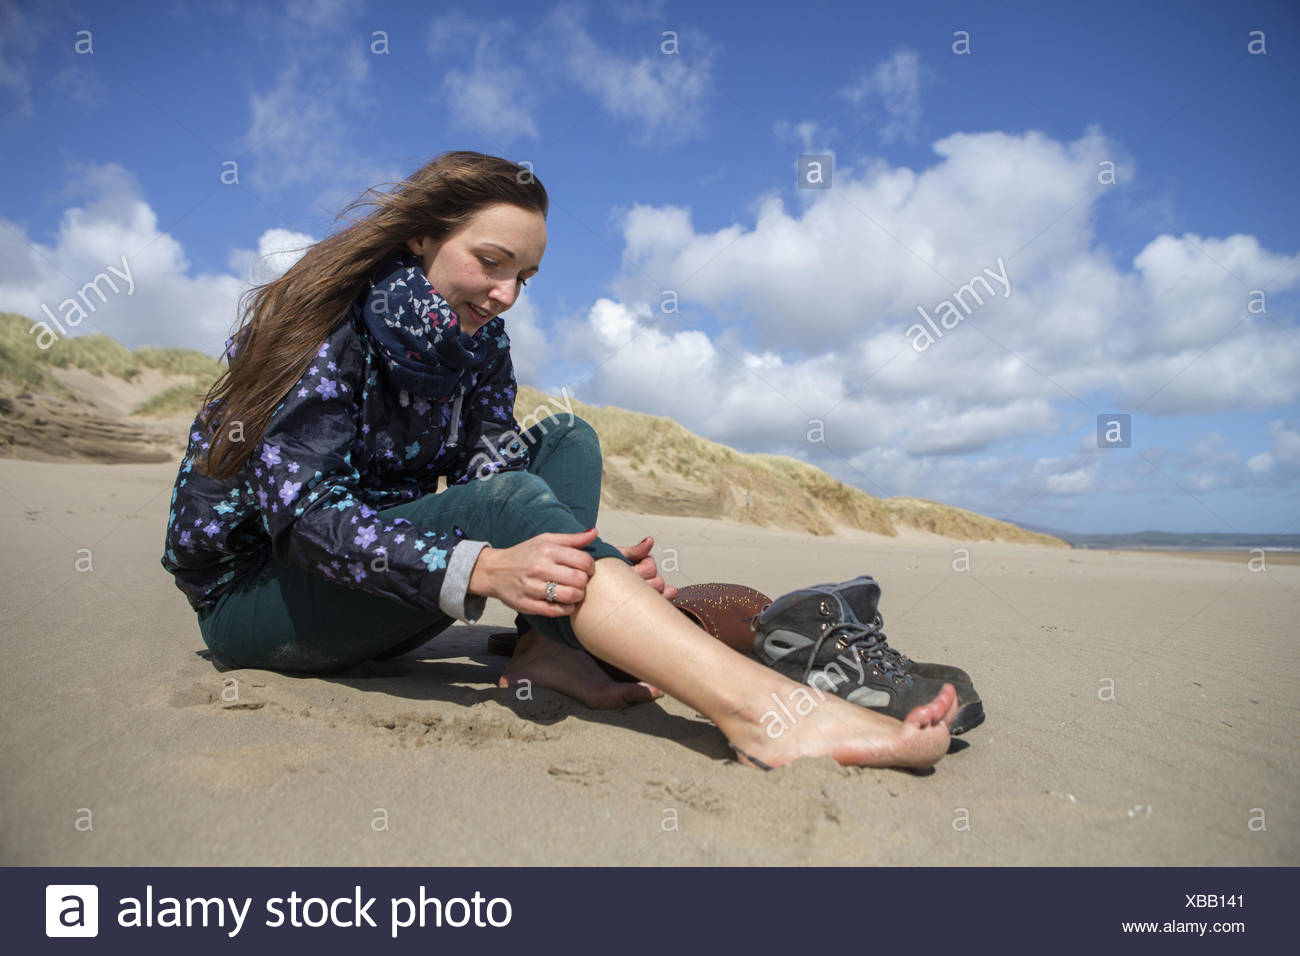 Young woman taking her hiking boots off on the beach at Harlech. - Stock Image